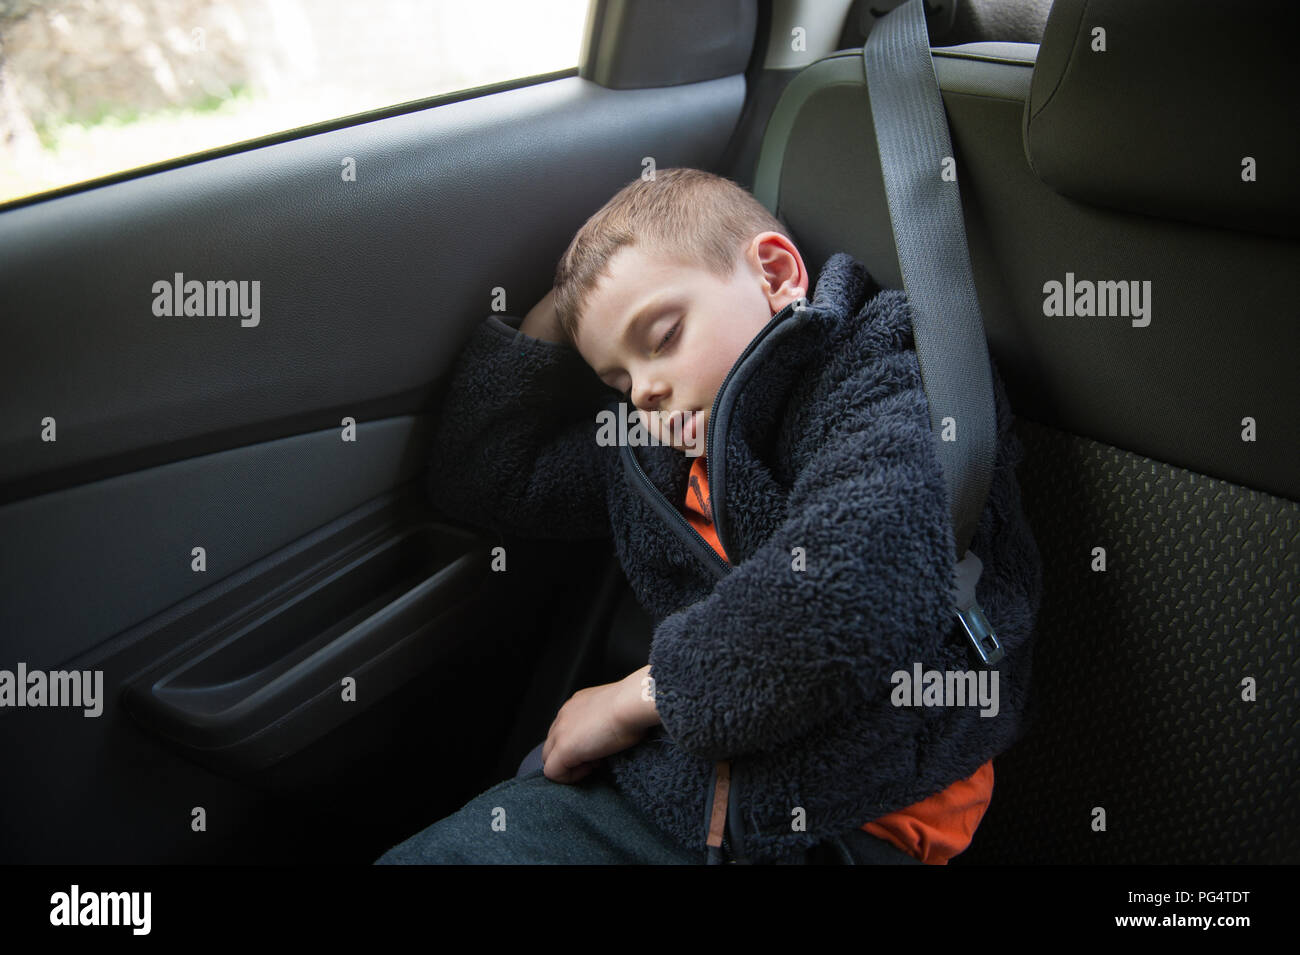 cute small child sleeping peacefully inside car wearing seat safety belt - Stock Image